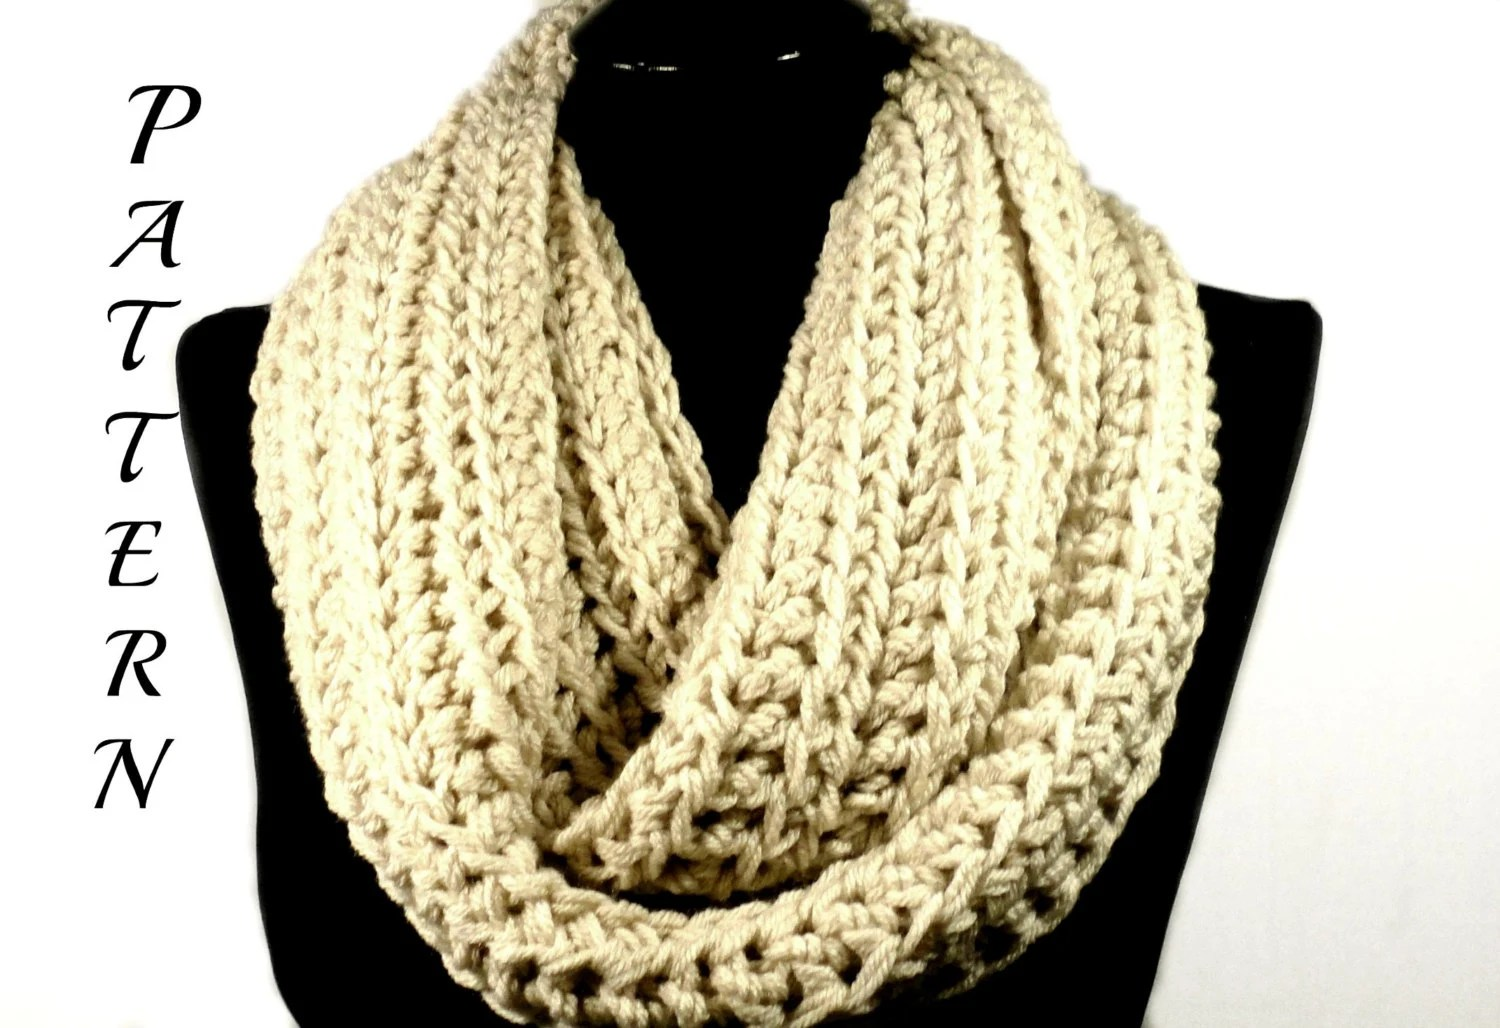 Crochet Pattern For Infinity Scarf Unique Design Pattern